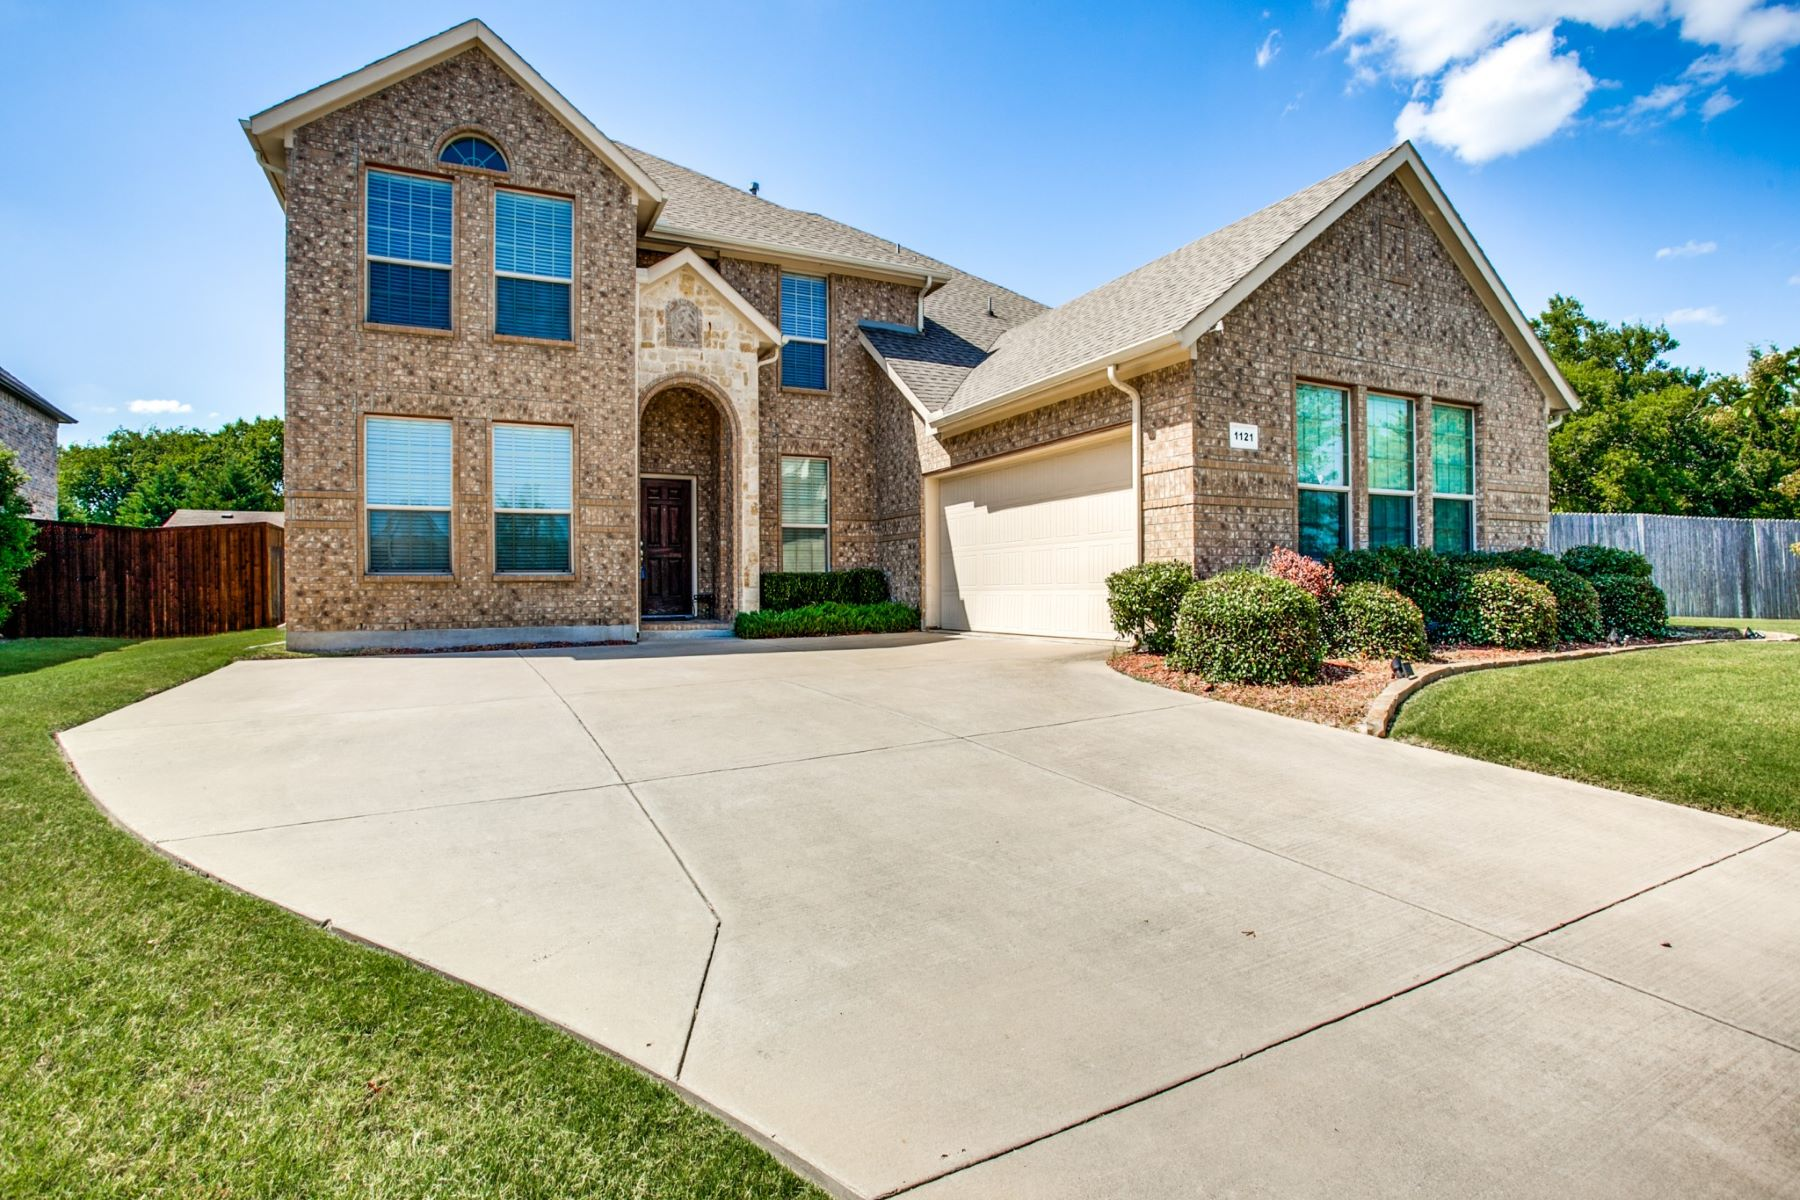 Single Family Homes for Active at 1121 Kentsdale Place Desoto, Texas 75115 United States